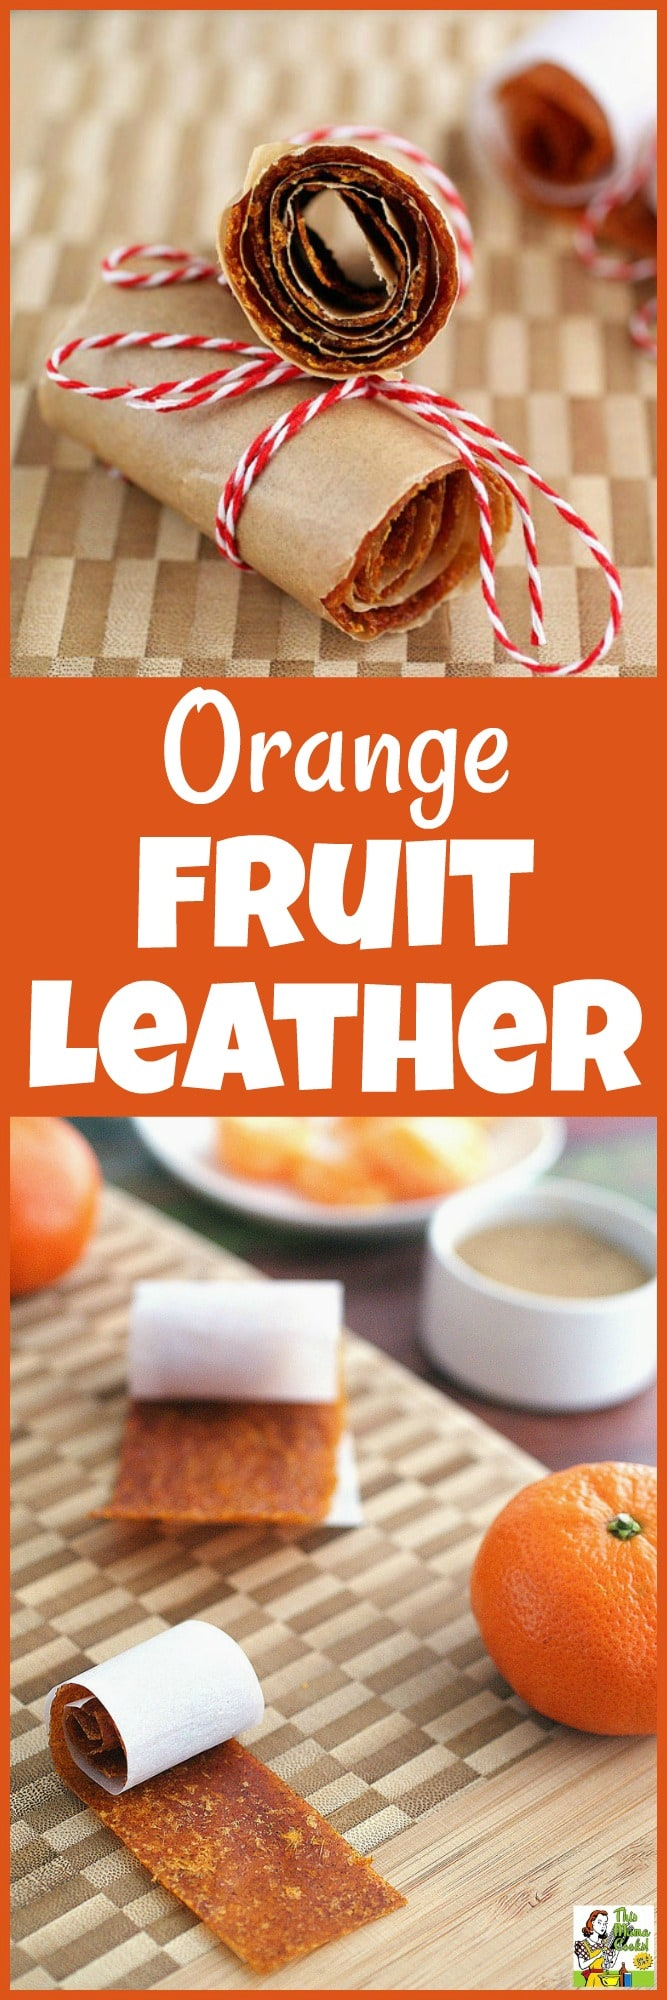 Want to learn how to make fruit leather? This homemade orange fruit leather recipe is easier than you think! #sugarfree #sugarfreerecipes #recipe #easy #recipeoftheday #healthyrecipes #glutenfree #easyrecipes #desserts #dessertrecipes #dessertideas #sugarfree #sugarfreerecipes #oranges #fruitleather #fruitrecipes #snacks #snackrecipes #homemadegifts #vegan #veganrecipes